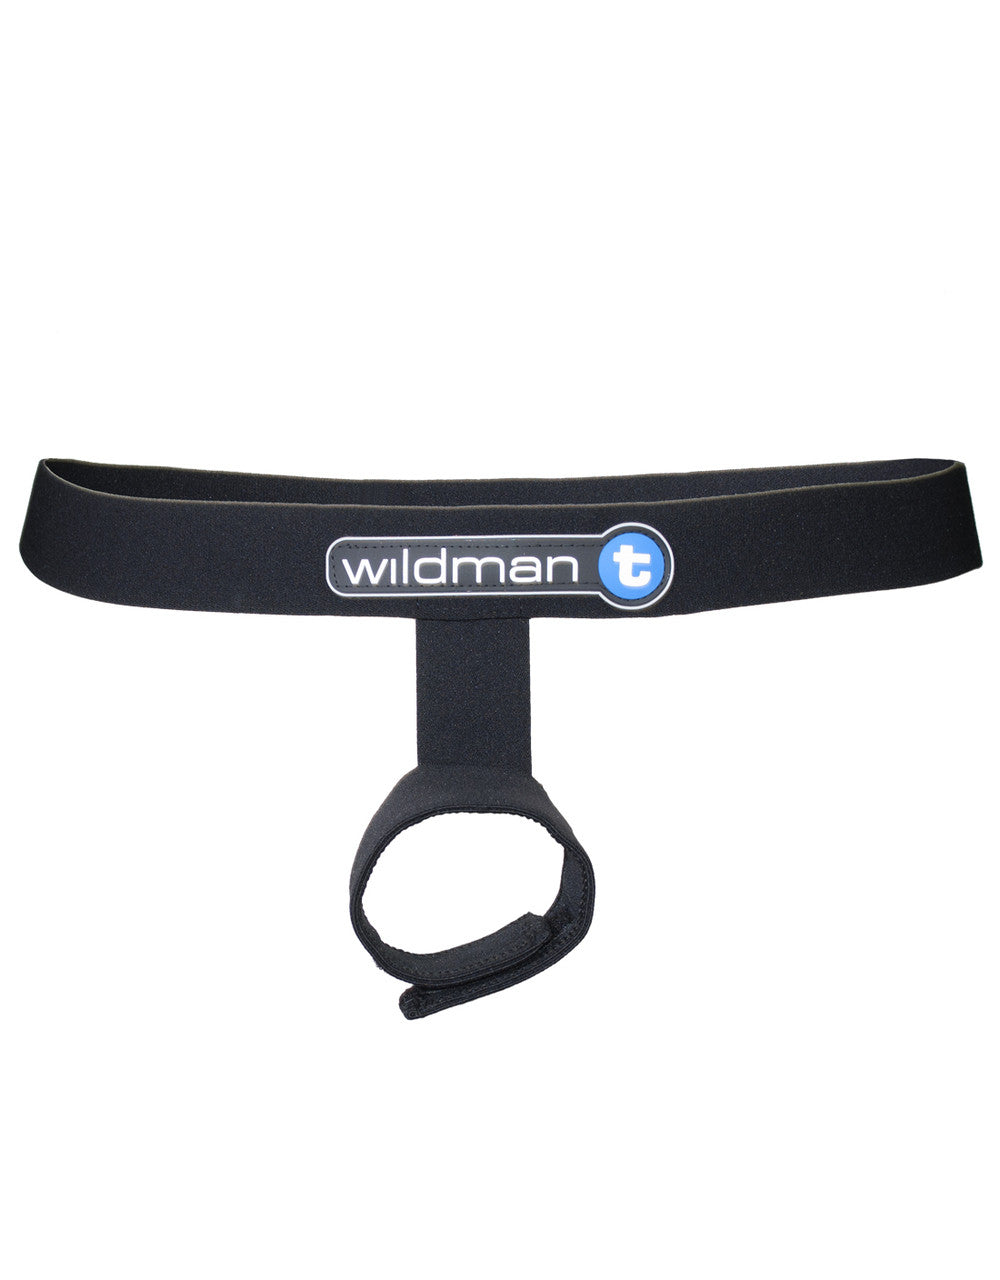 WildmanT Ball Lifter Sport Protruder! Black - Big Penis Underwear, WildmanT - WildmanT